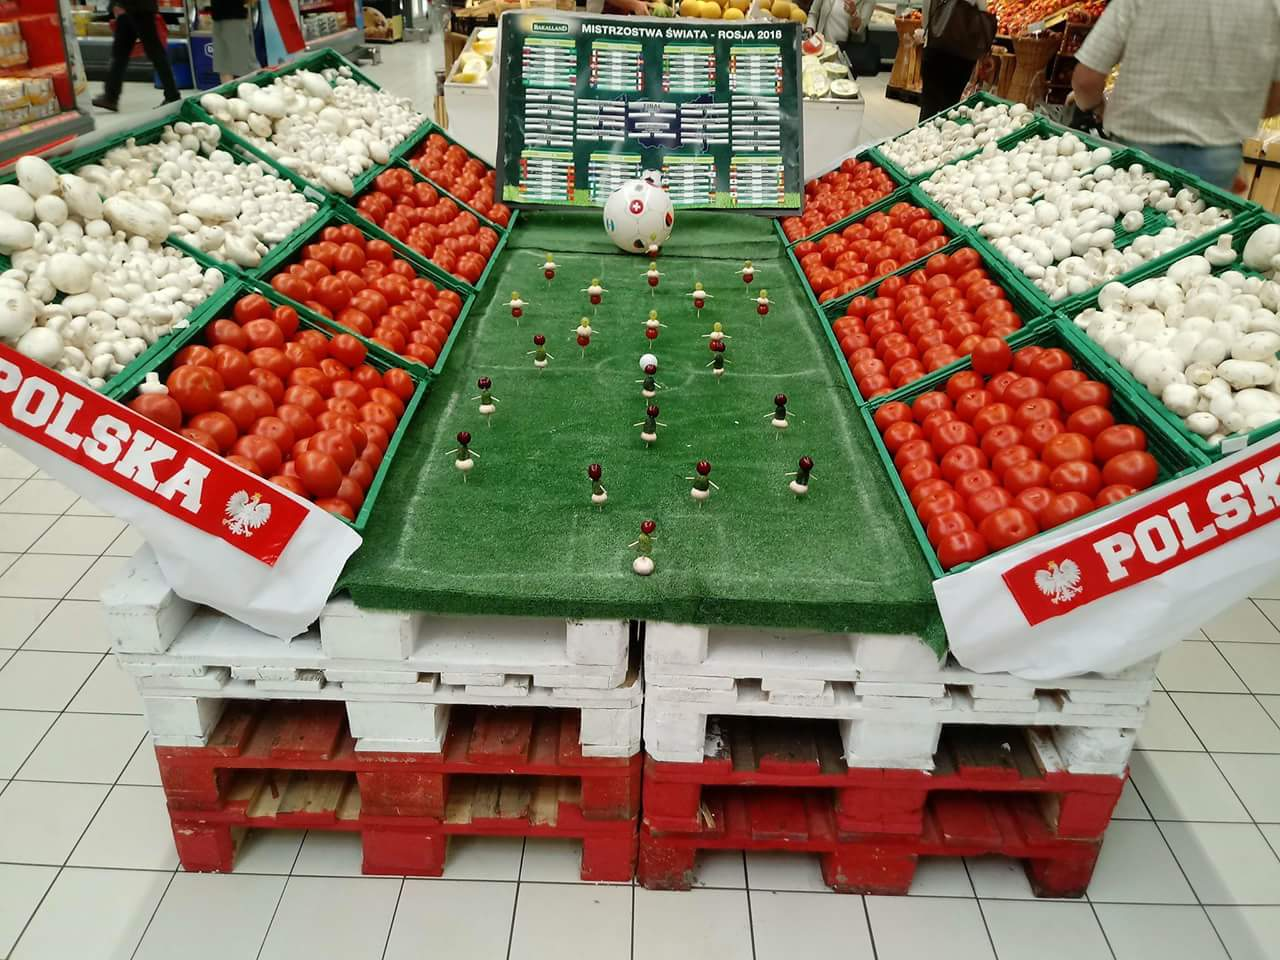 Supermarket in Poland during football world cup